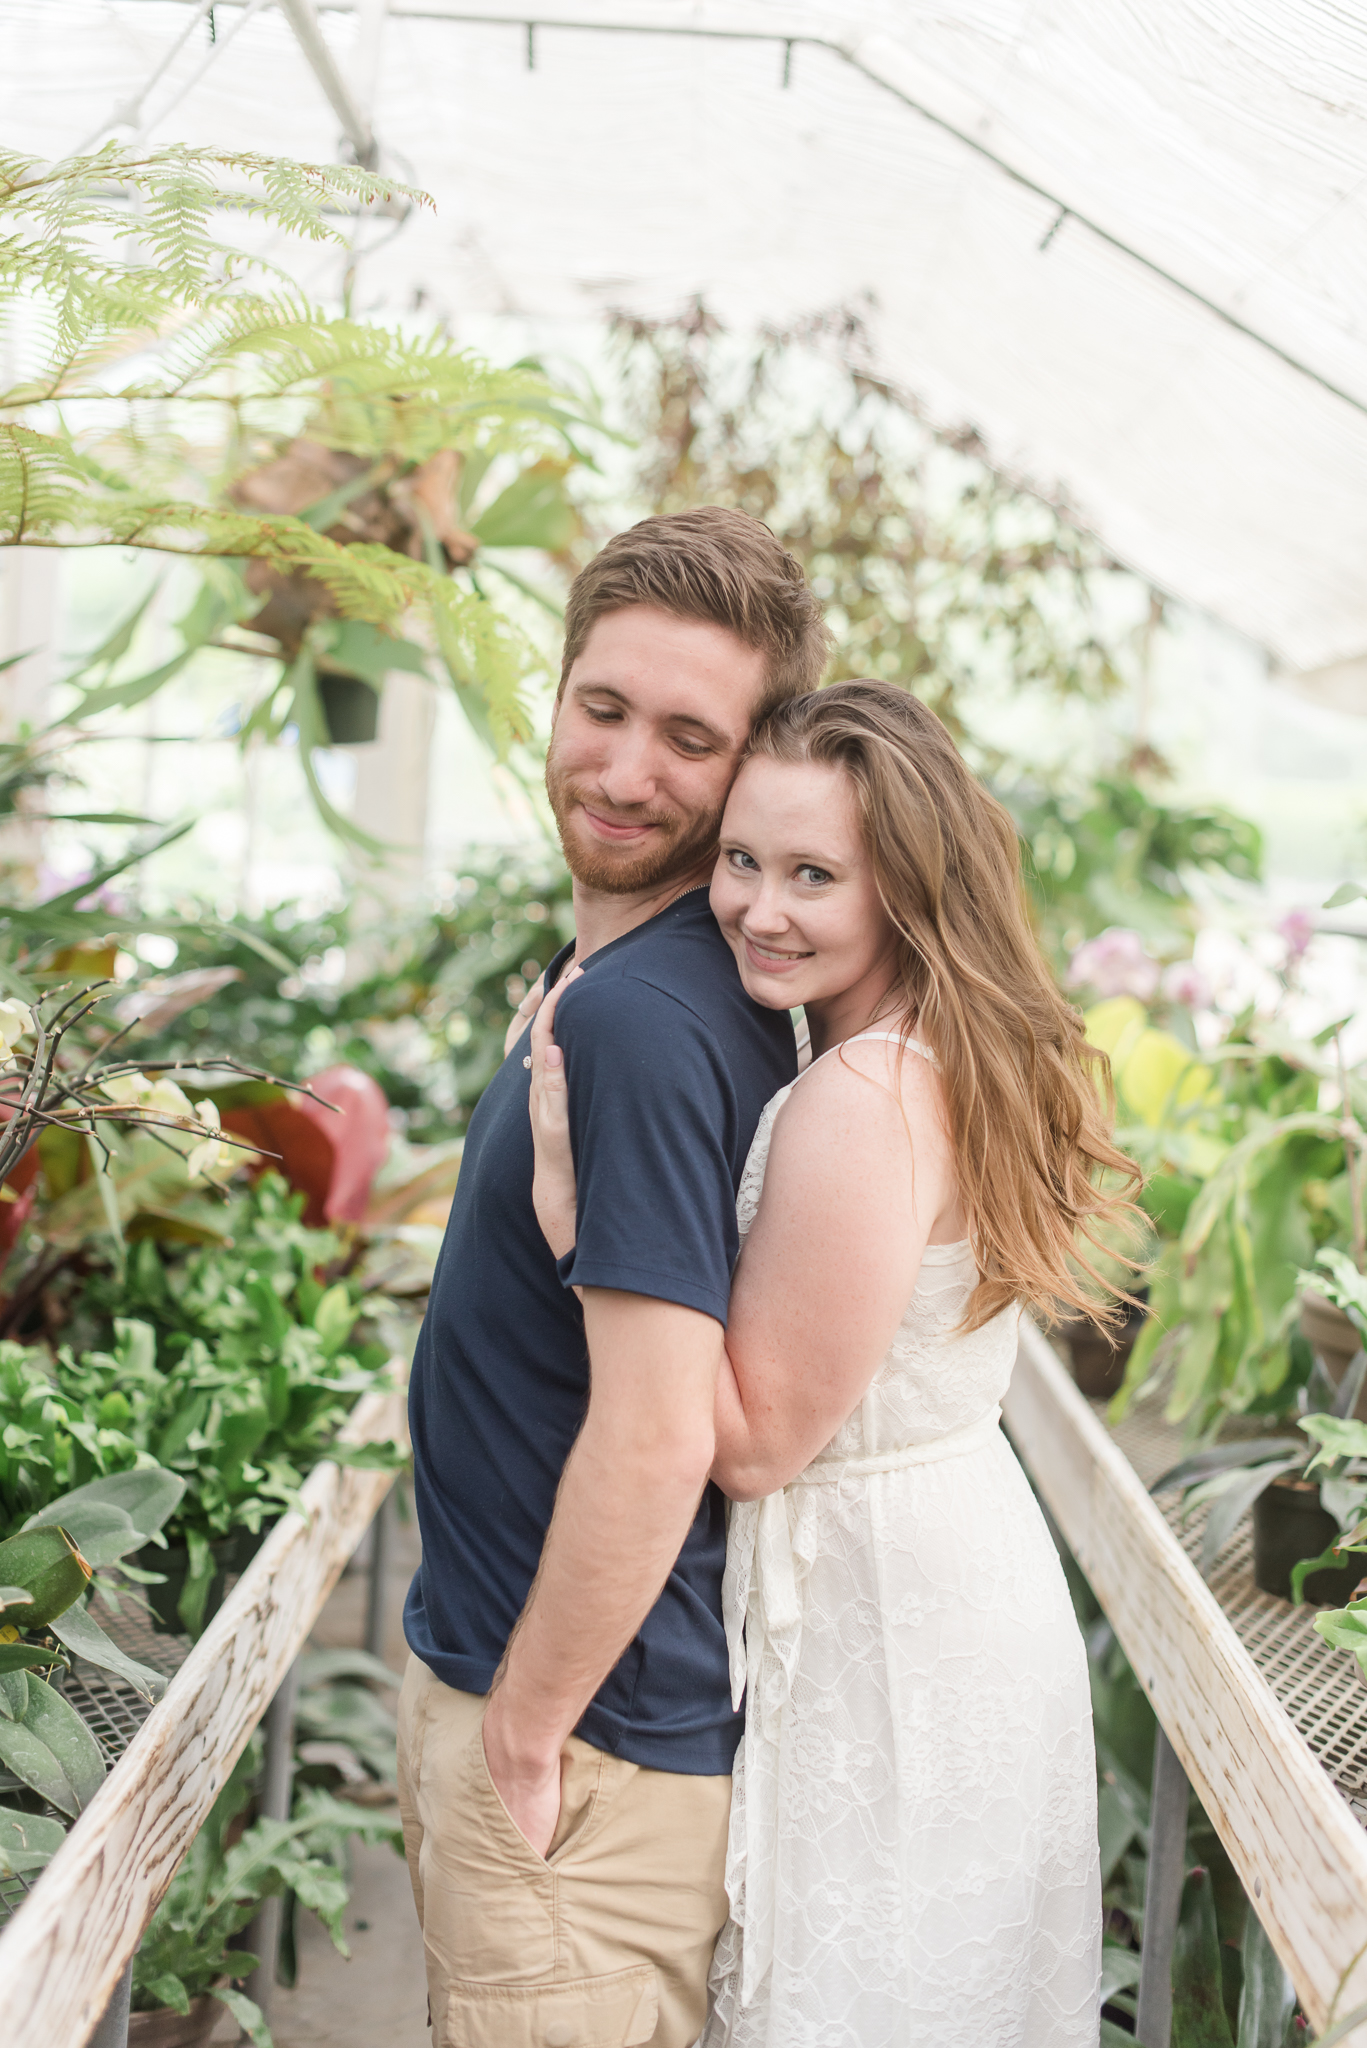 Spring Engagement Session at Newfields Indiana Museum of Art Wedding Photographer.jpg